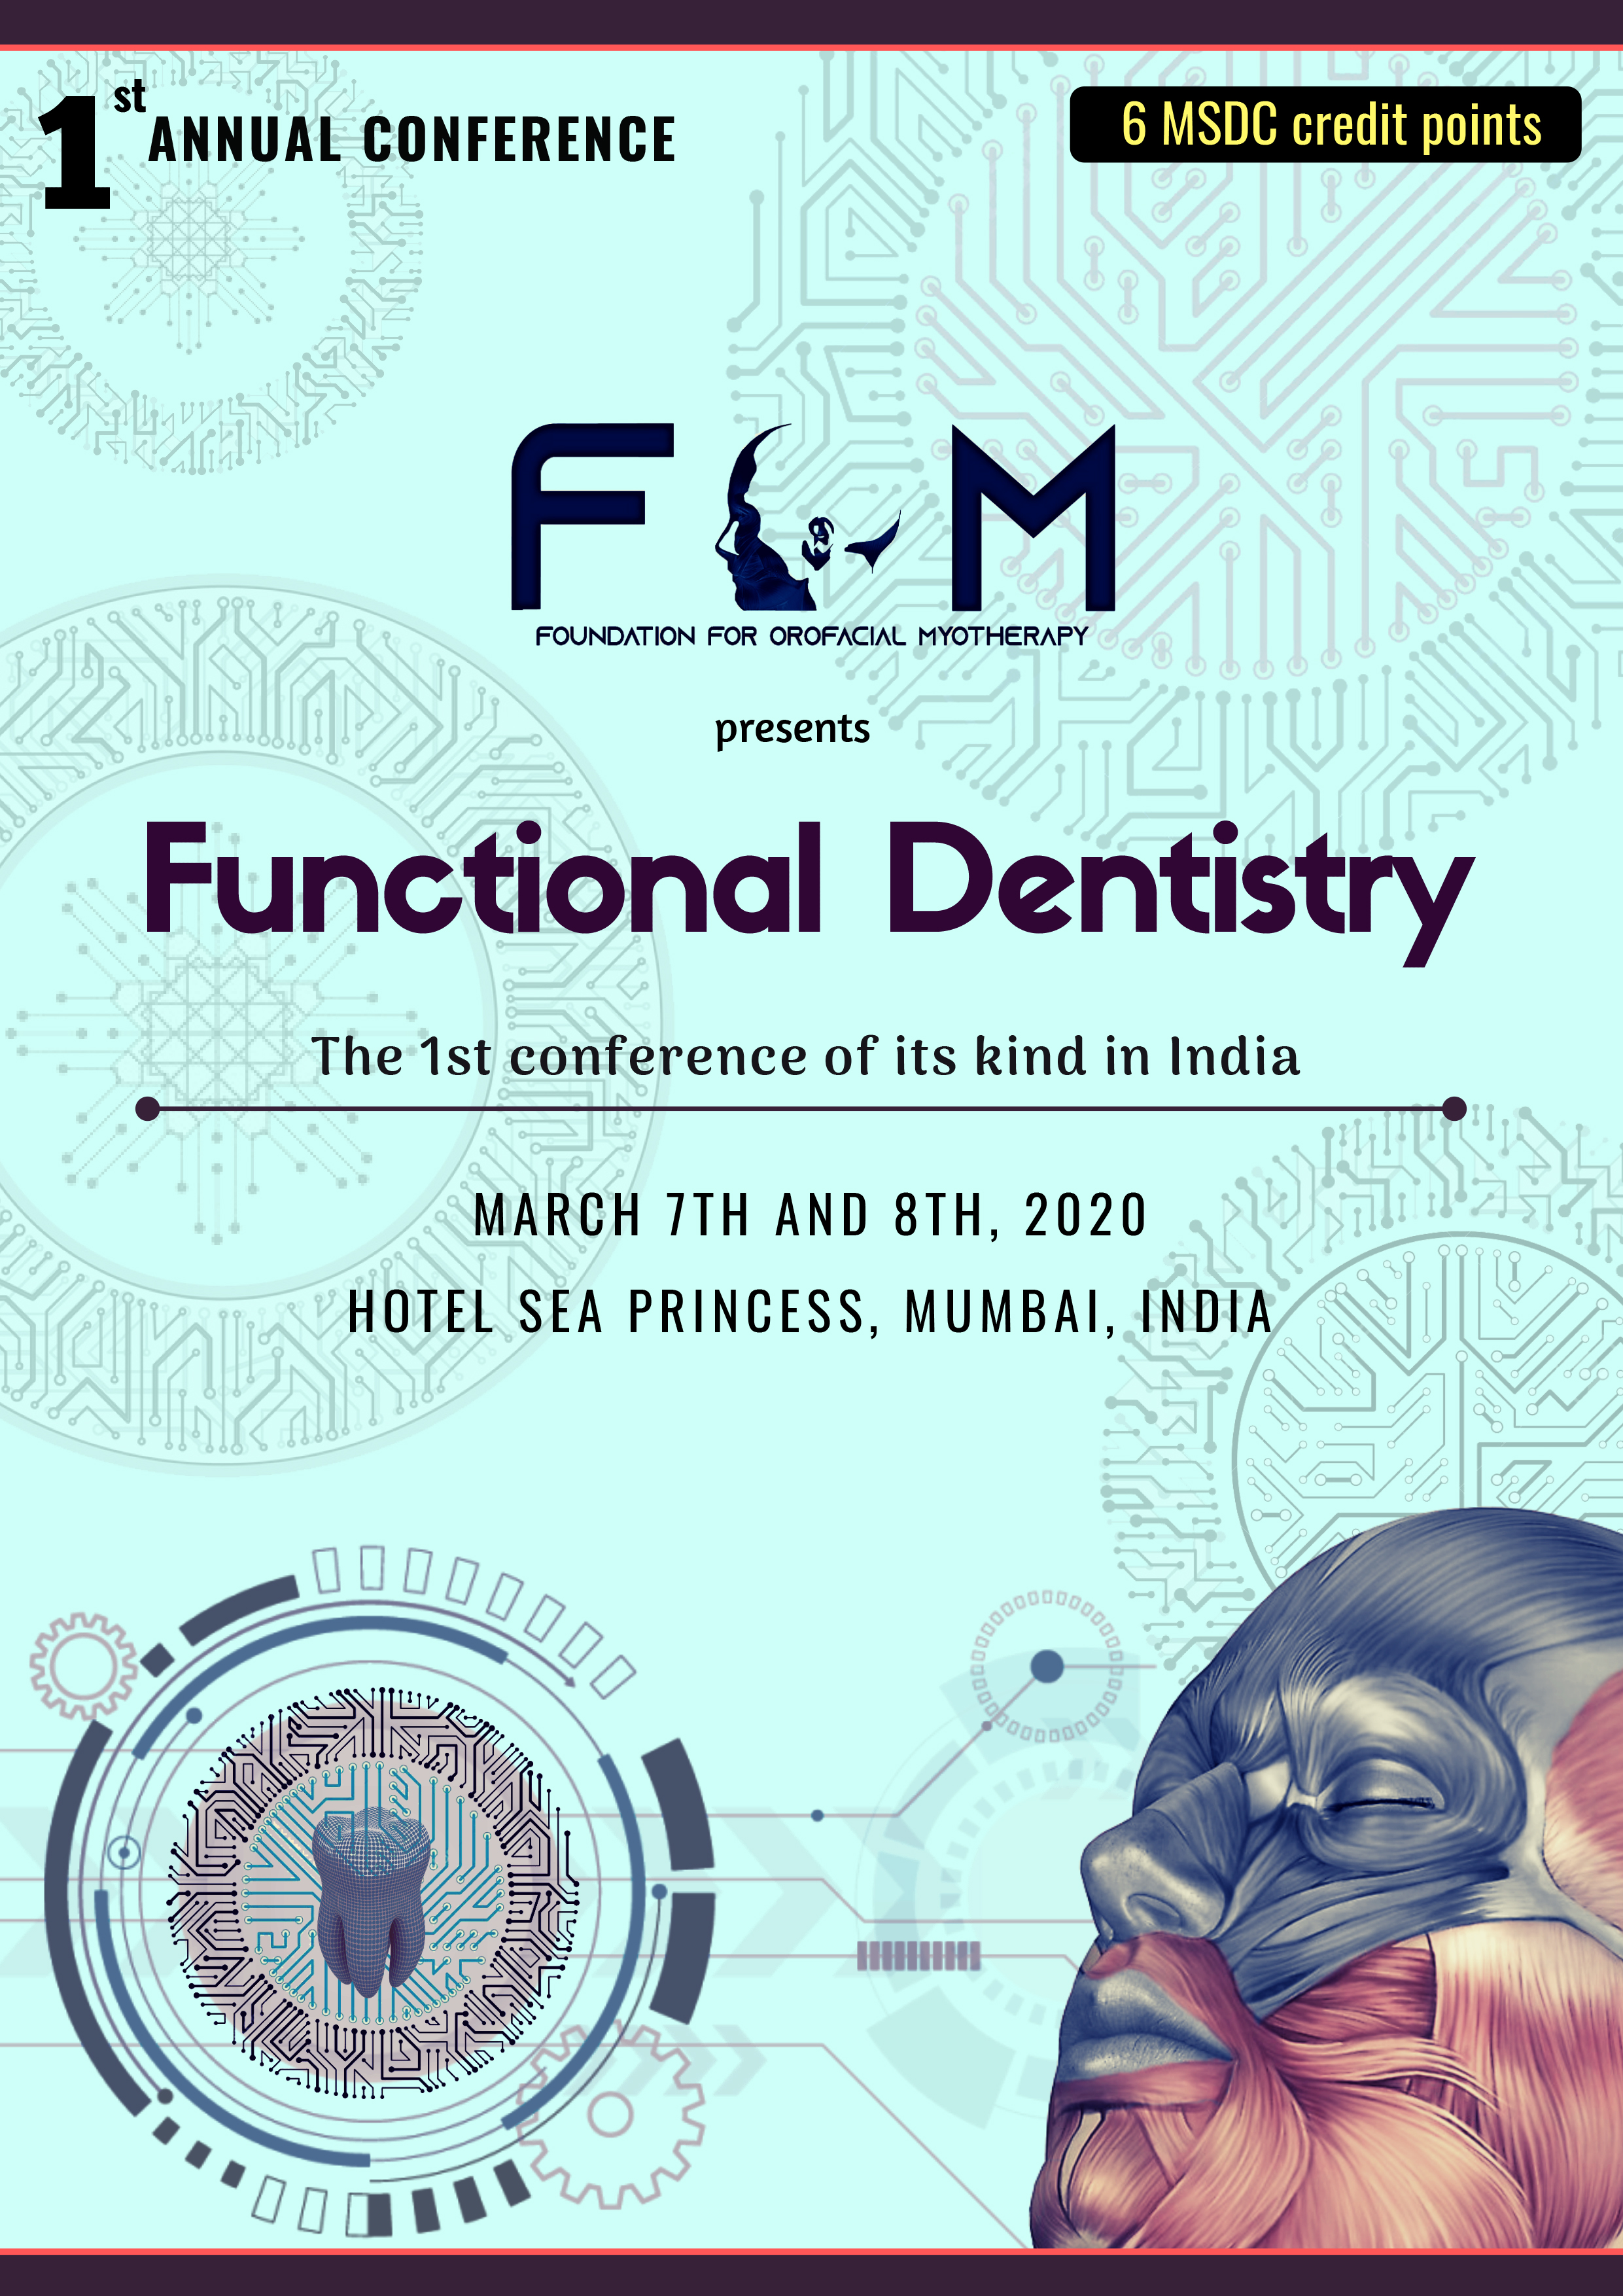 Functional Dentistry: The 1st Conference of its kind in India